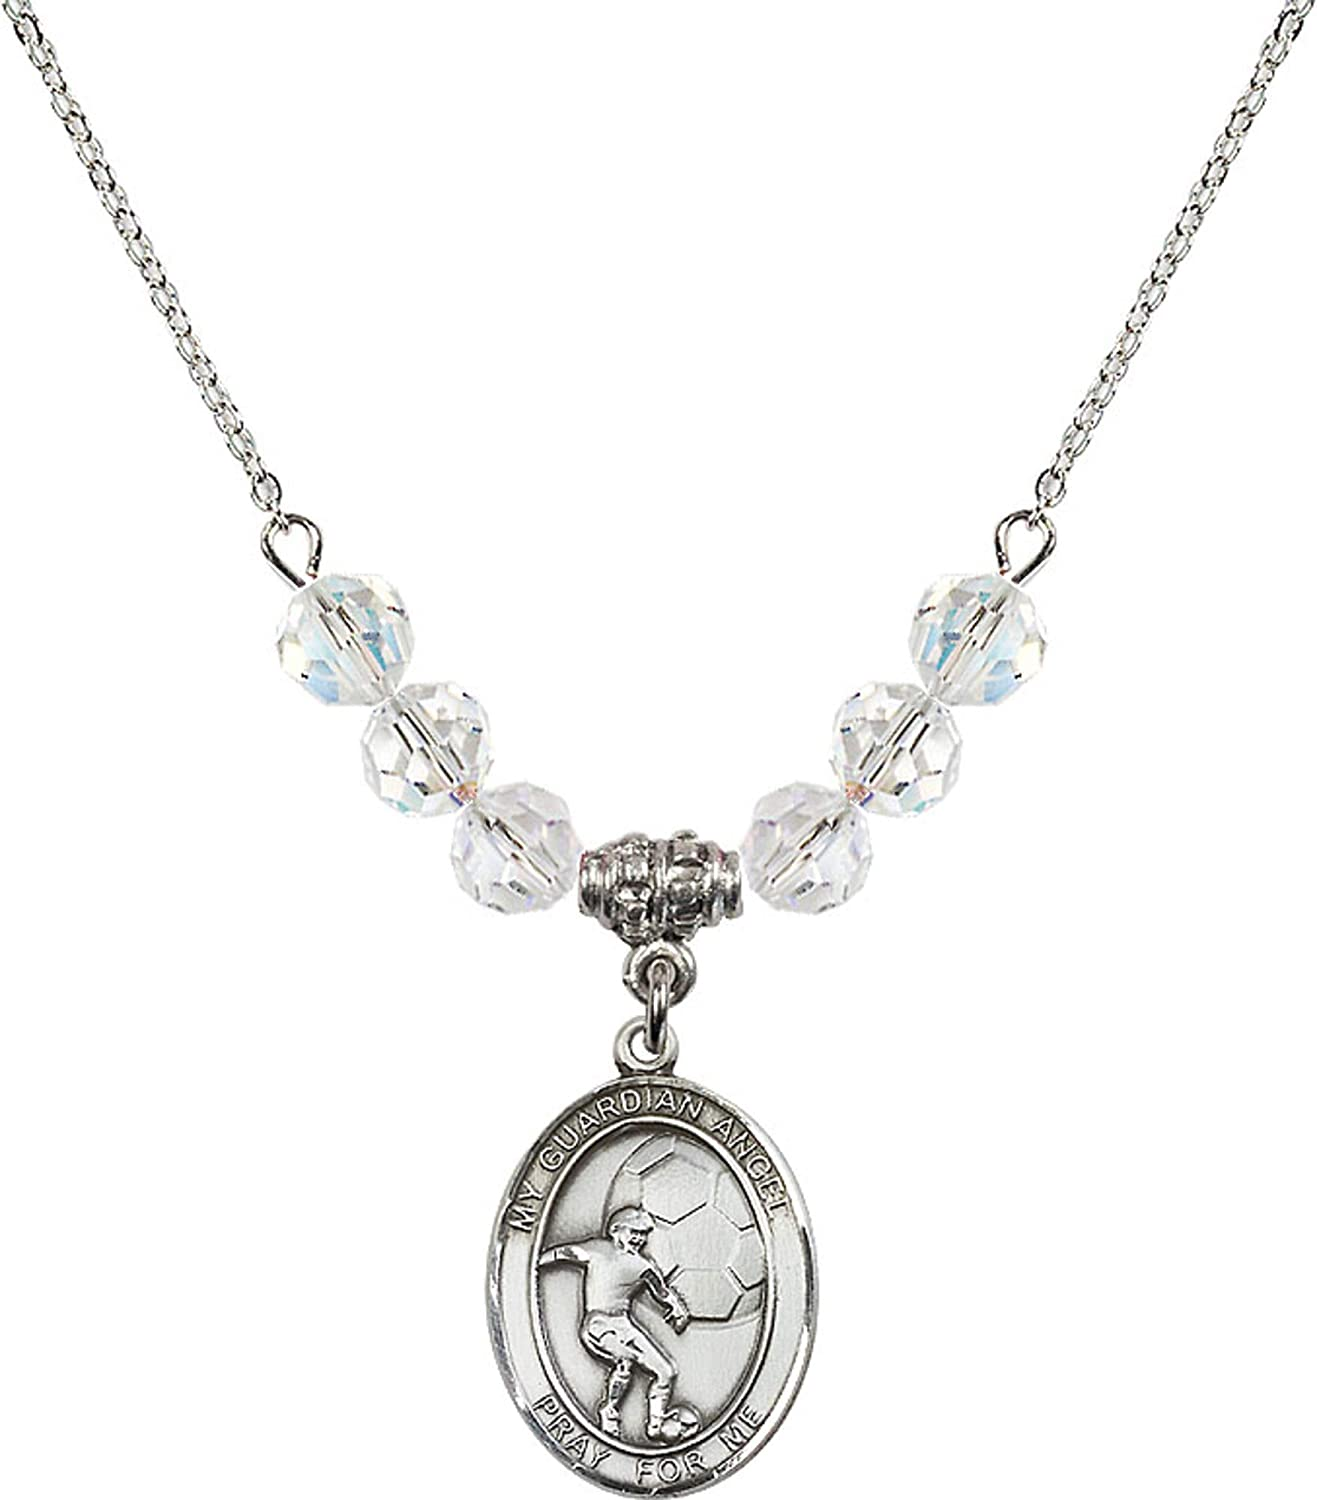 Bonyak Jewelry 18 Inch Rhodium Plated Necklace w// 6mm White April Birth Month Stone Beads and Guardian Angel//Soccer Charm